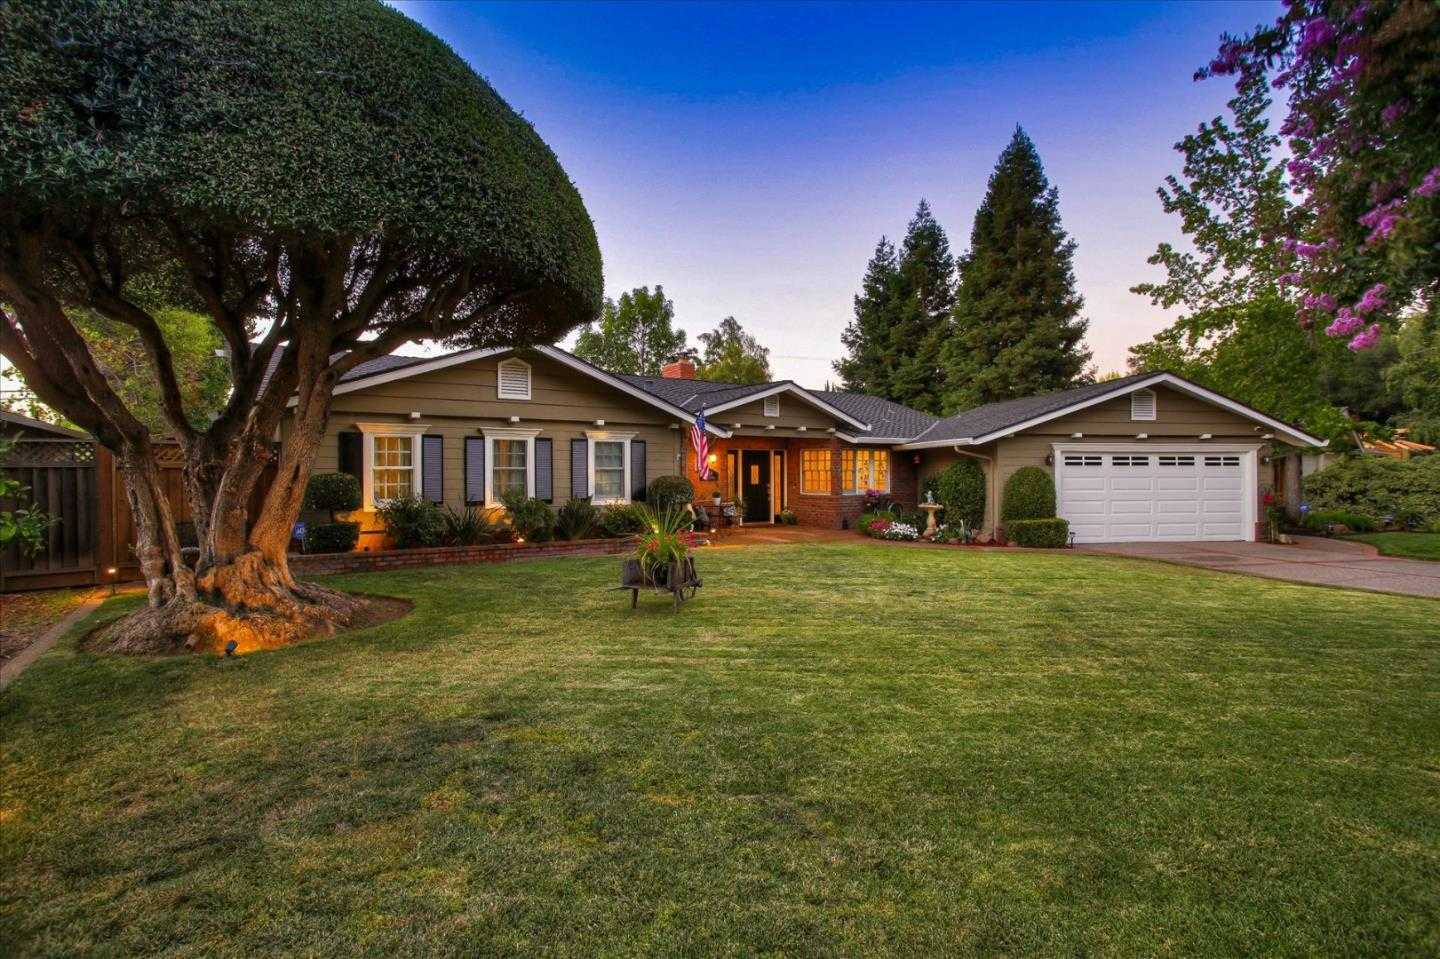 $1,849,777 - 3Br/3Ba -  for Sale in San Jose